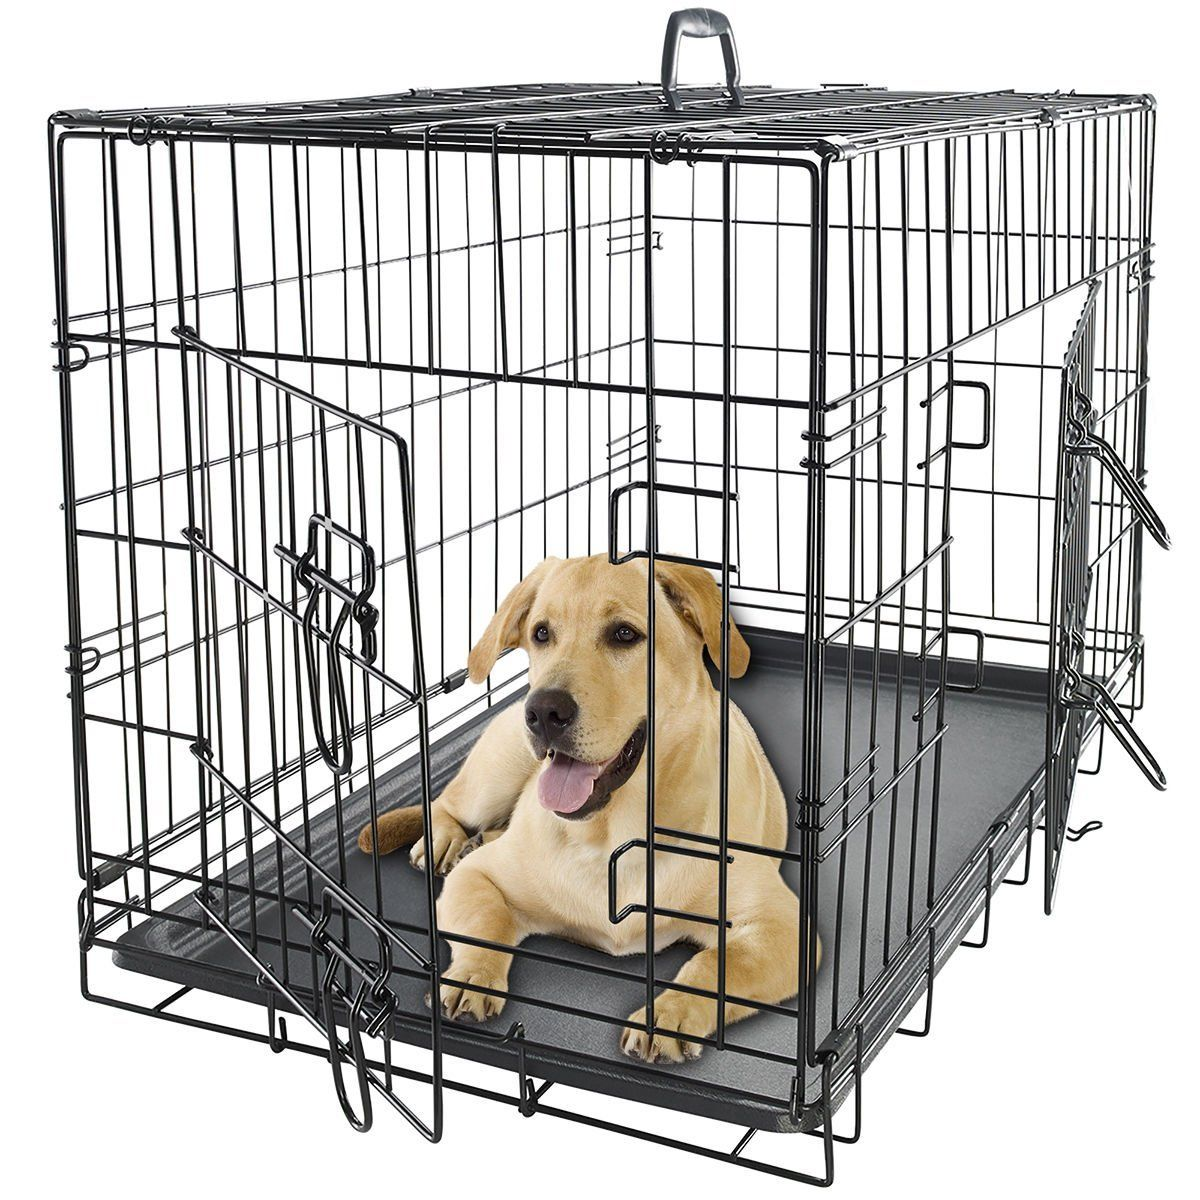 42 Dog Crate 2 Door Wdivide Wtray Fold Metal Pet Cage Kennel